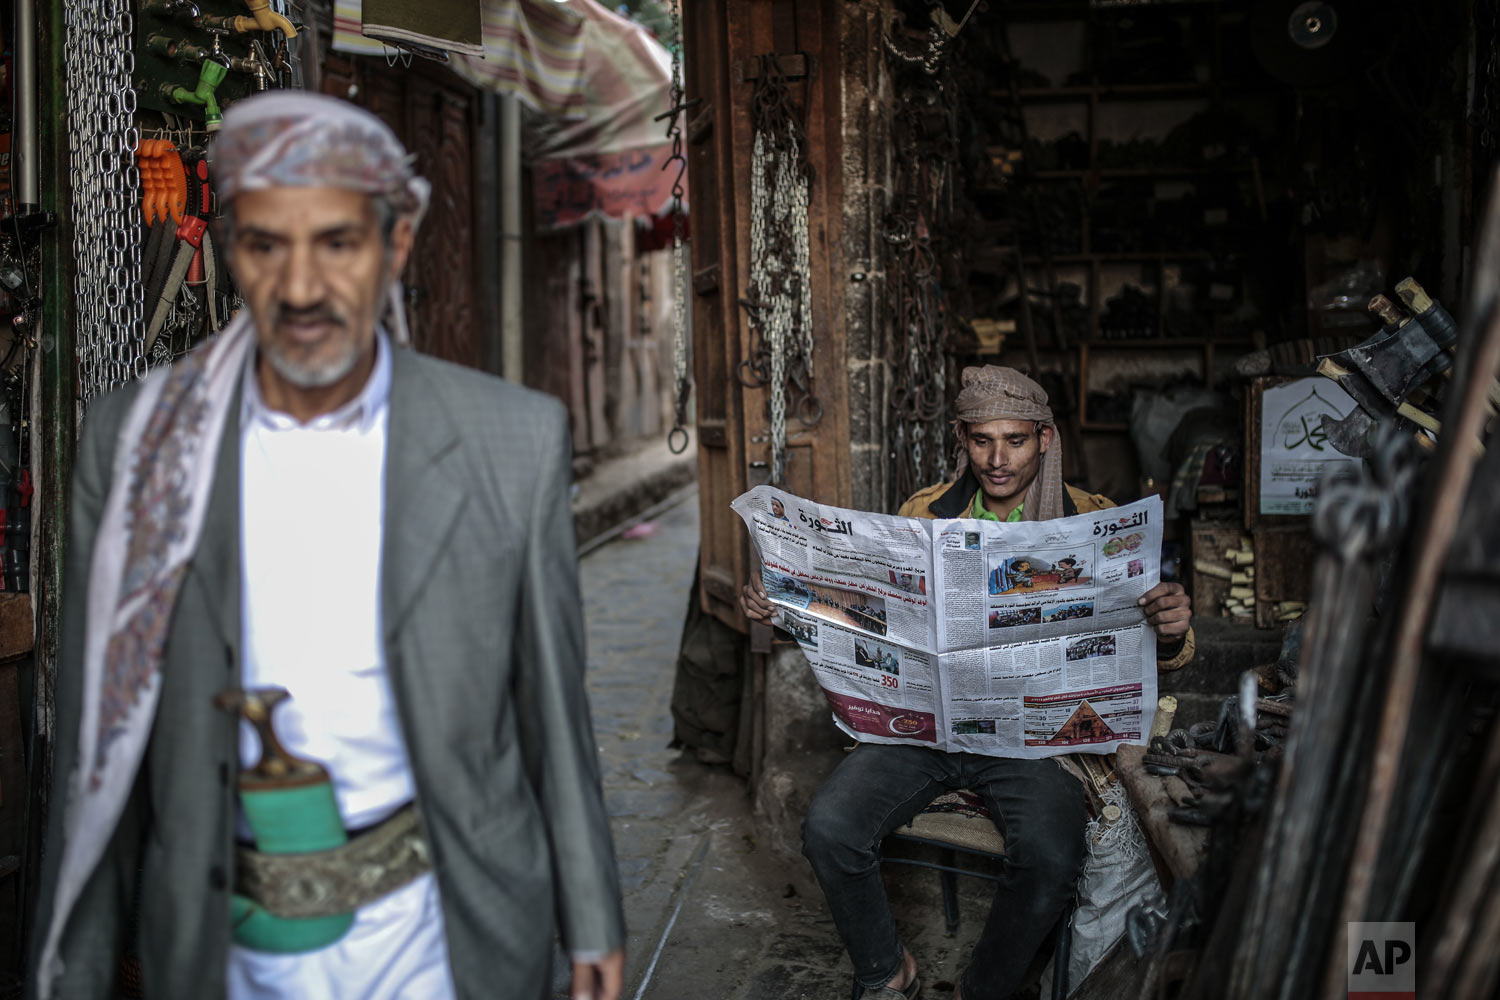 A man reads al-Thawra newspaper at Souq al-Melh marketplace in the old city of Sanaa, Yemen, Tuesday, Dec. 11, 2018. Yemen's warring sides agreed Thursday to an immediate cease-fire in the strategic port city of Hodeida, where fighting has disrupted vital aid deliveries and left the country on the brink of starvation in the 4-year-old civil war. (AP Photo/Hani Mohammed)